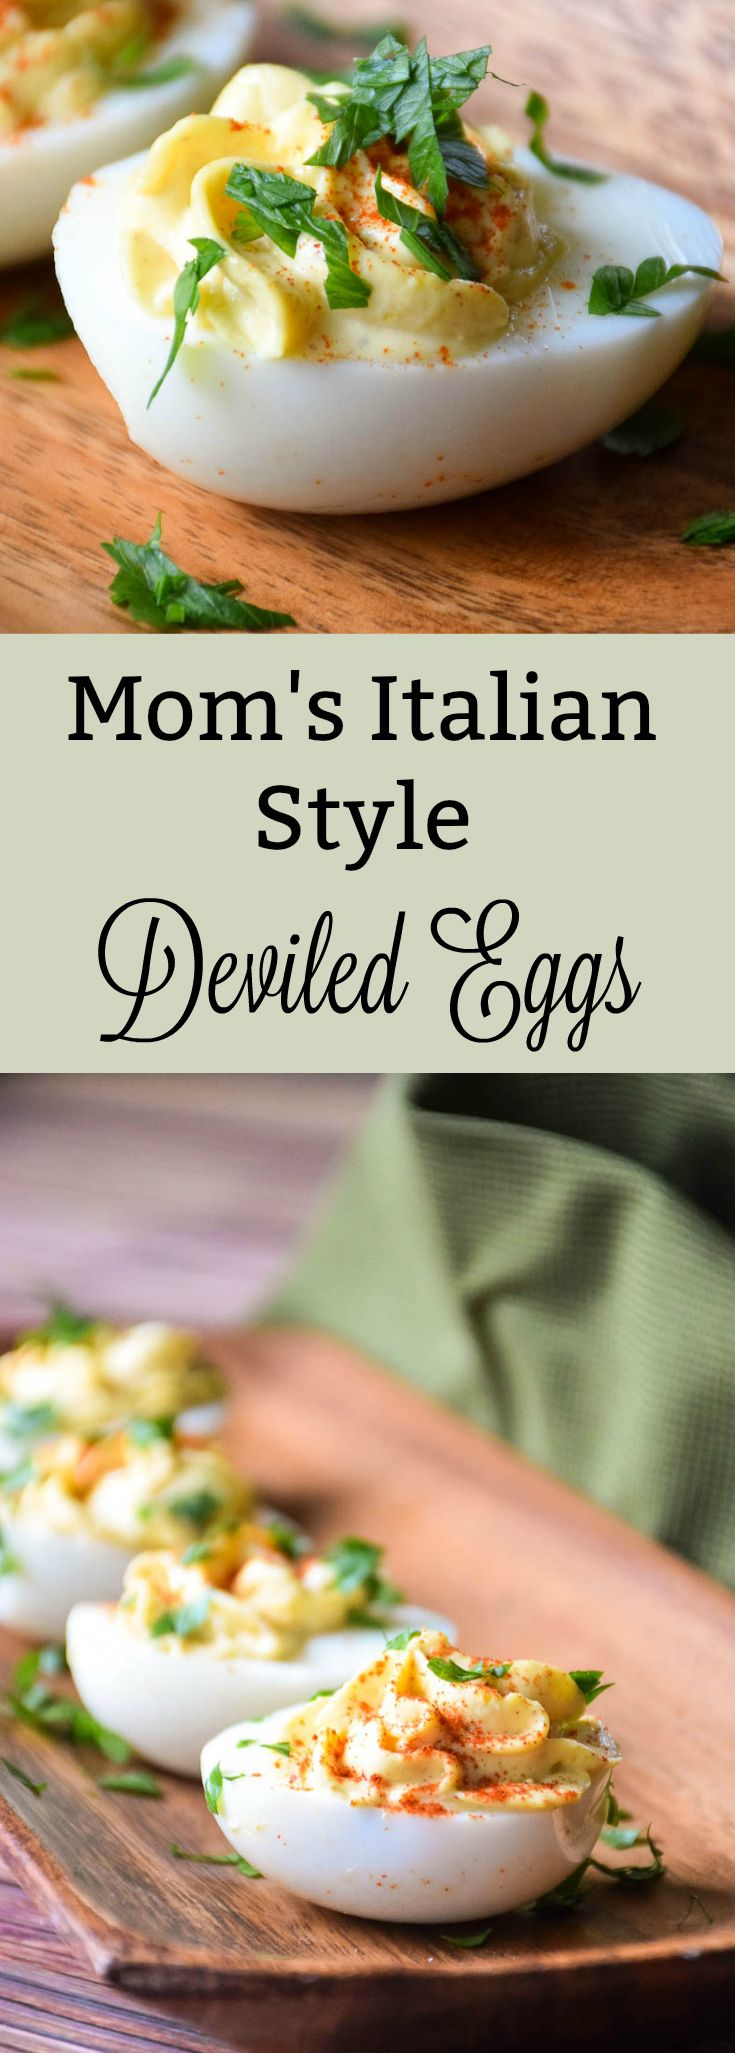 Mom's Italian Style Deviled Eggs are full of flavor from fresh garlic and cayenne pepper. These little treats are perfect for your next picnic! #ad